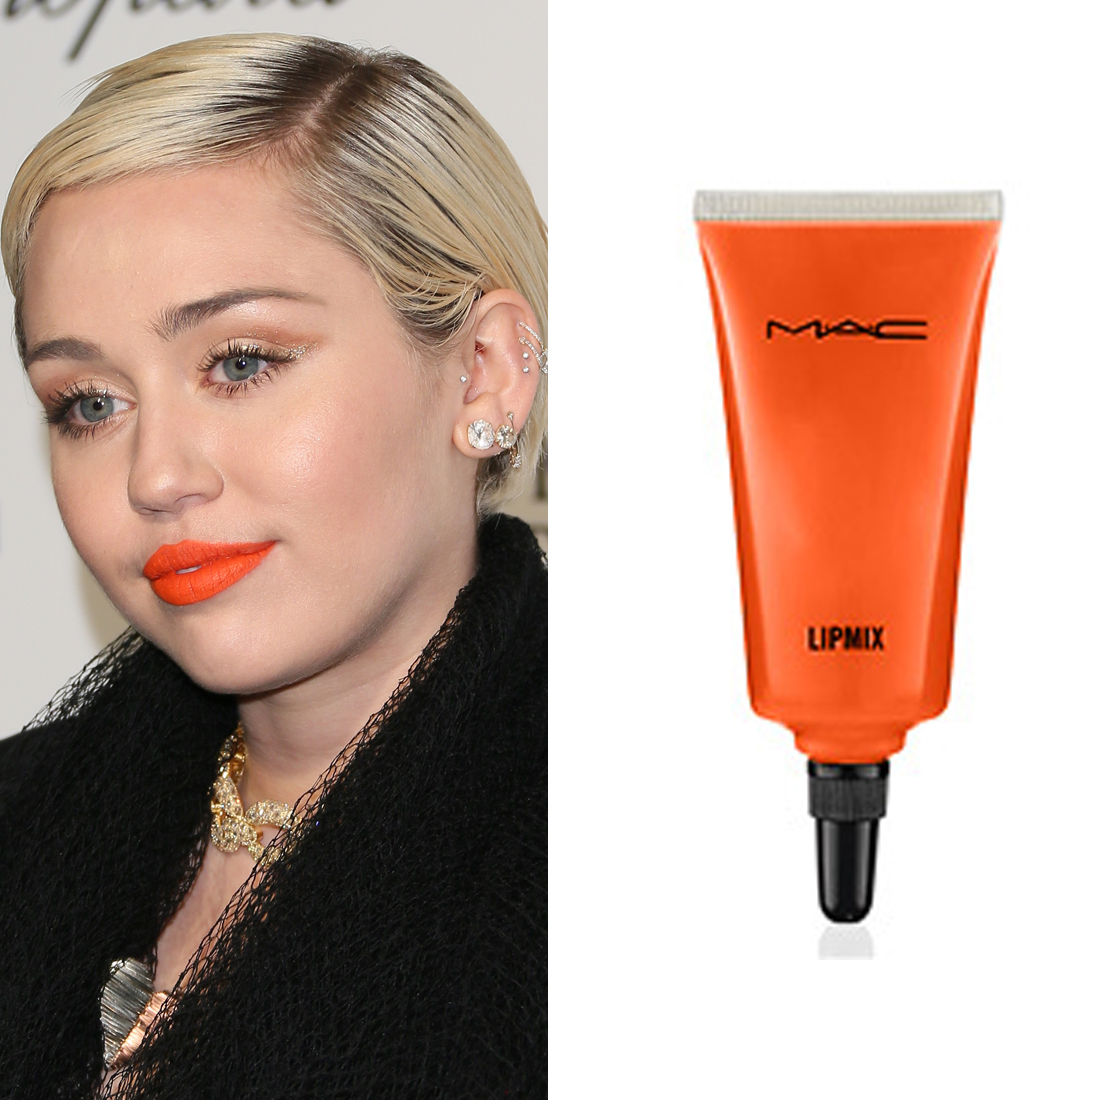 Miley Cyrus at the Oscars     Miley's bright orange lipstick was a mix of three different shades. First, makeup artist Pati Dubroff layered  Mac Cosmetics Lipsticks in Neon Orange and Morange  ($36 each). Then, she added a topcoat of  Lipmix in Orange  ($25) to get the traffic-cone hue.  Image Source:  Getty    Read More     Oscars Beauty  Celebrity Beauty  Award Season  Beauty Shopping  Oscars  Golden Globe Awards  MAC Cosmetics  Red Carpet  Miley Cyrus